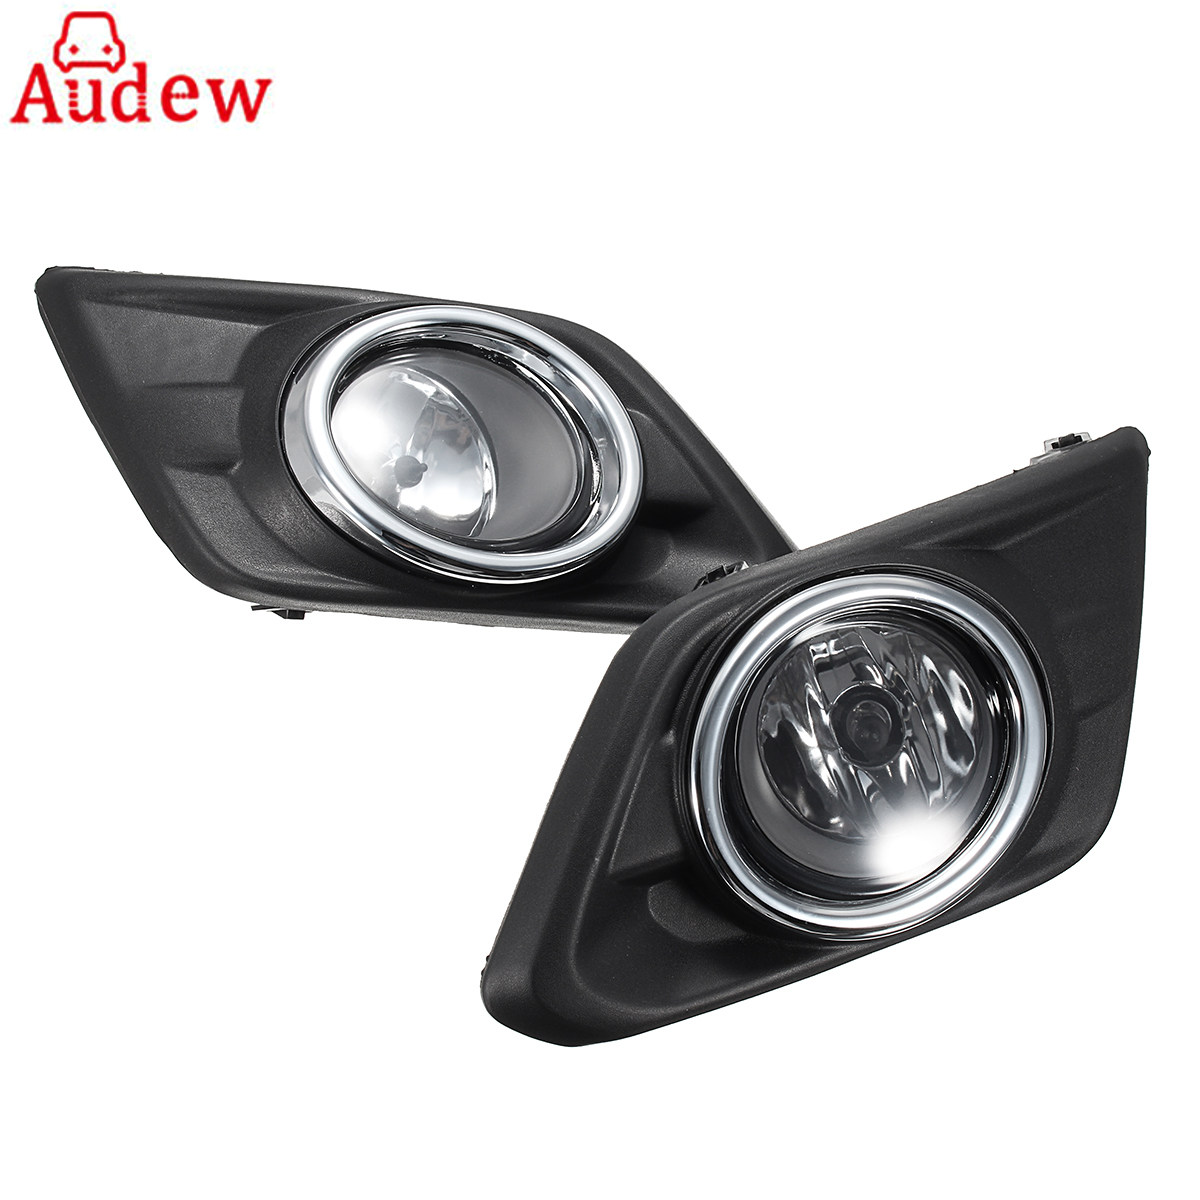 1Pair Chrome Clear Lens Car Fog Light Lamp For Nissan Rogue SUV 14-16 w/Bulbs Switch Bezel Kit for nissan patrol y62 armada accessories original design fog lamp with chrome fog light cover